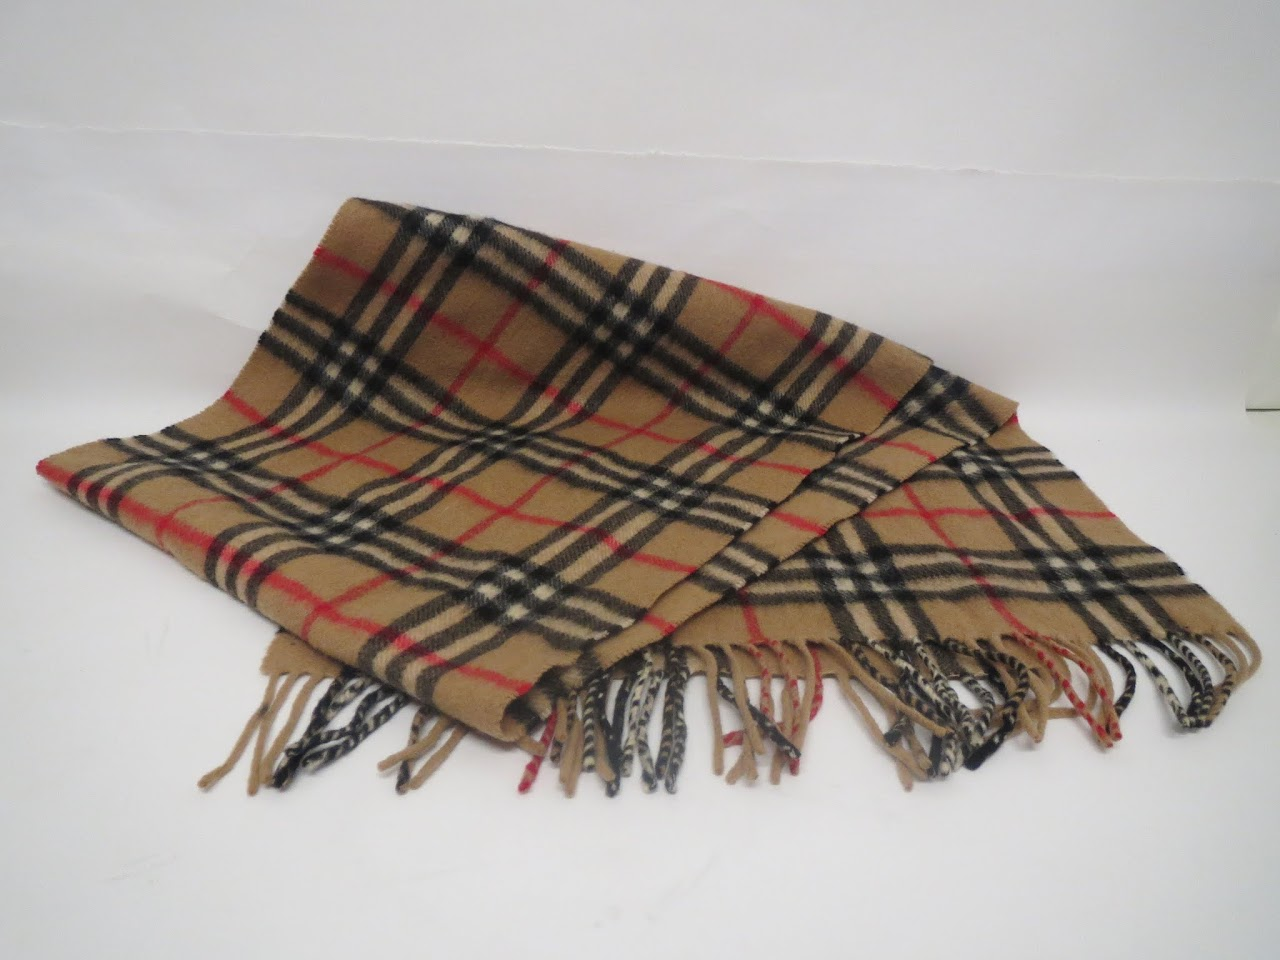 Vintage Burberry Wool & Cashmere Scarf